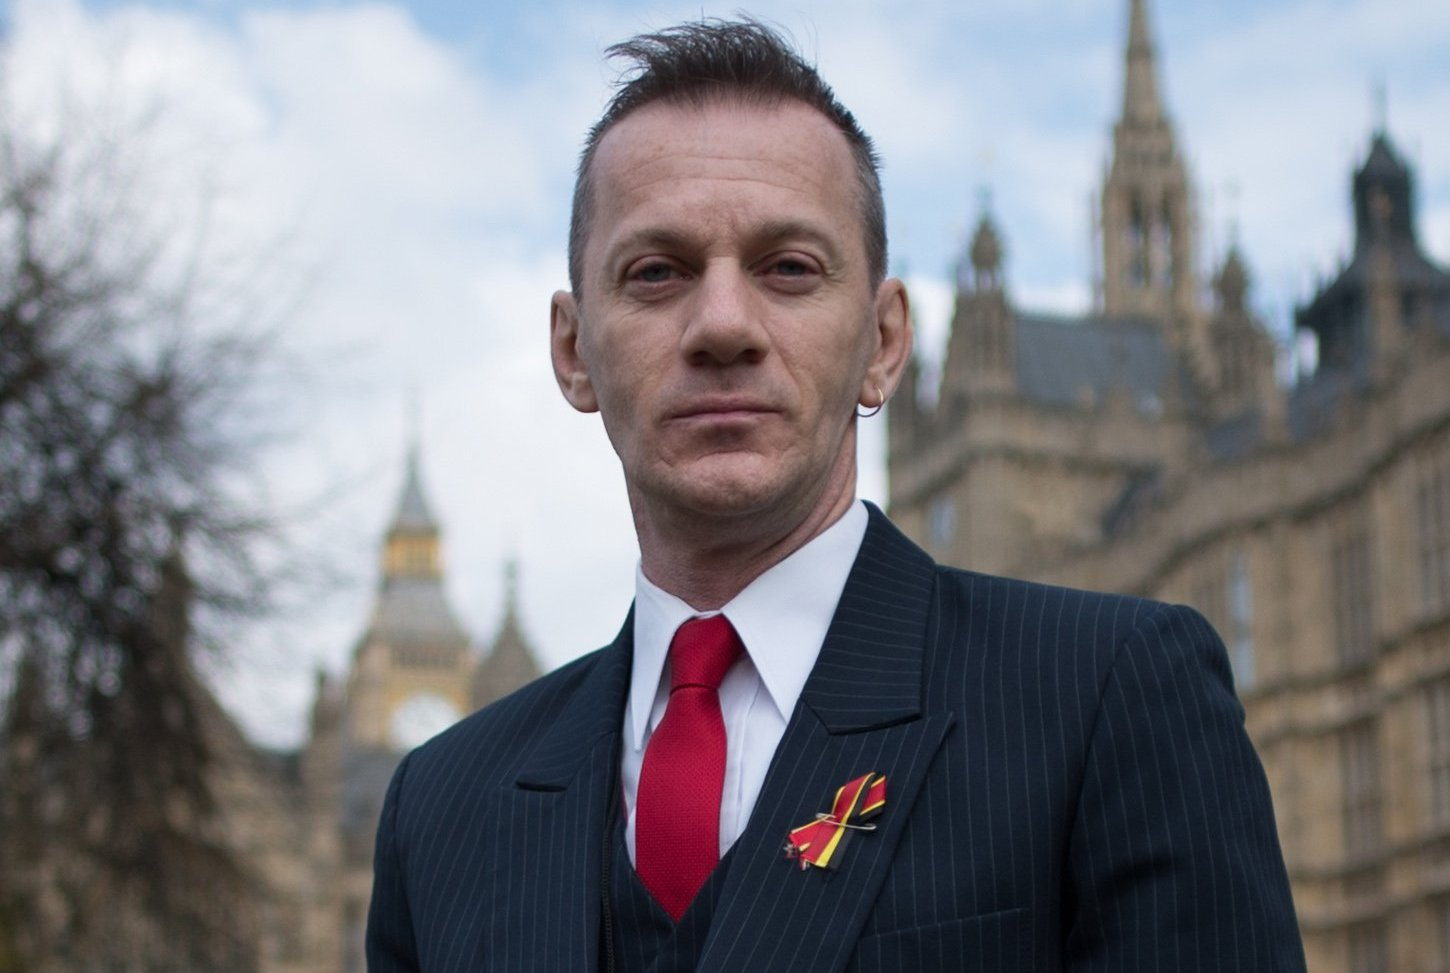 Blood transfusion scandal victim Mark Ward outside the Houses of Parliament in London